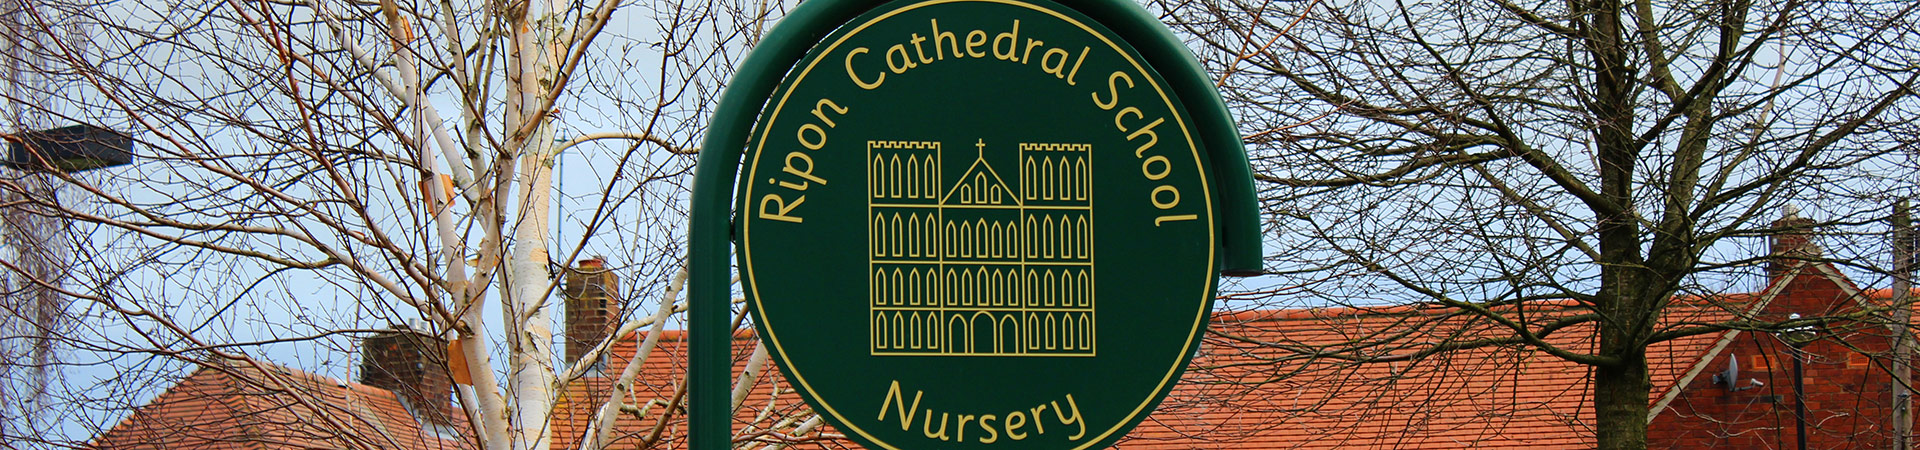 Ripon Cathedral School